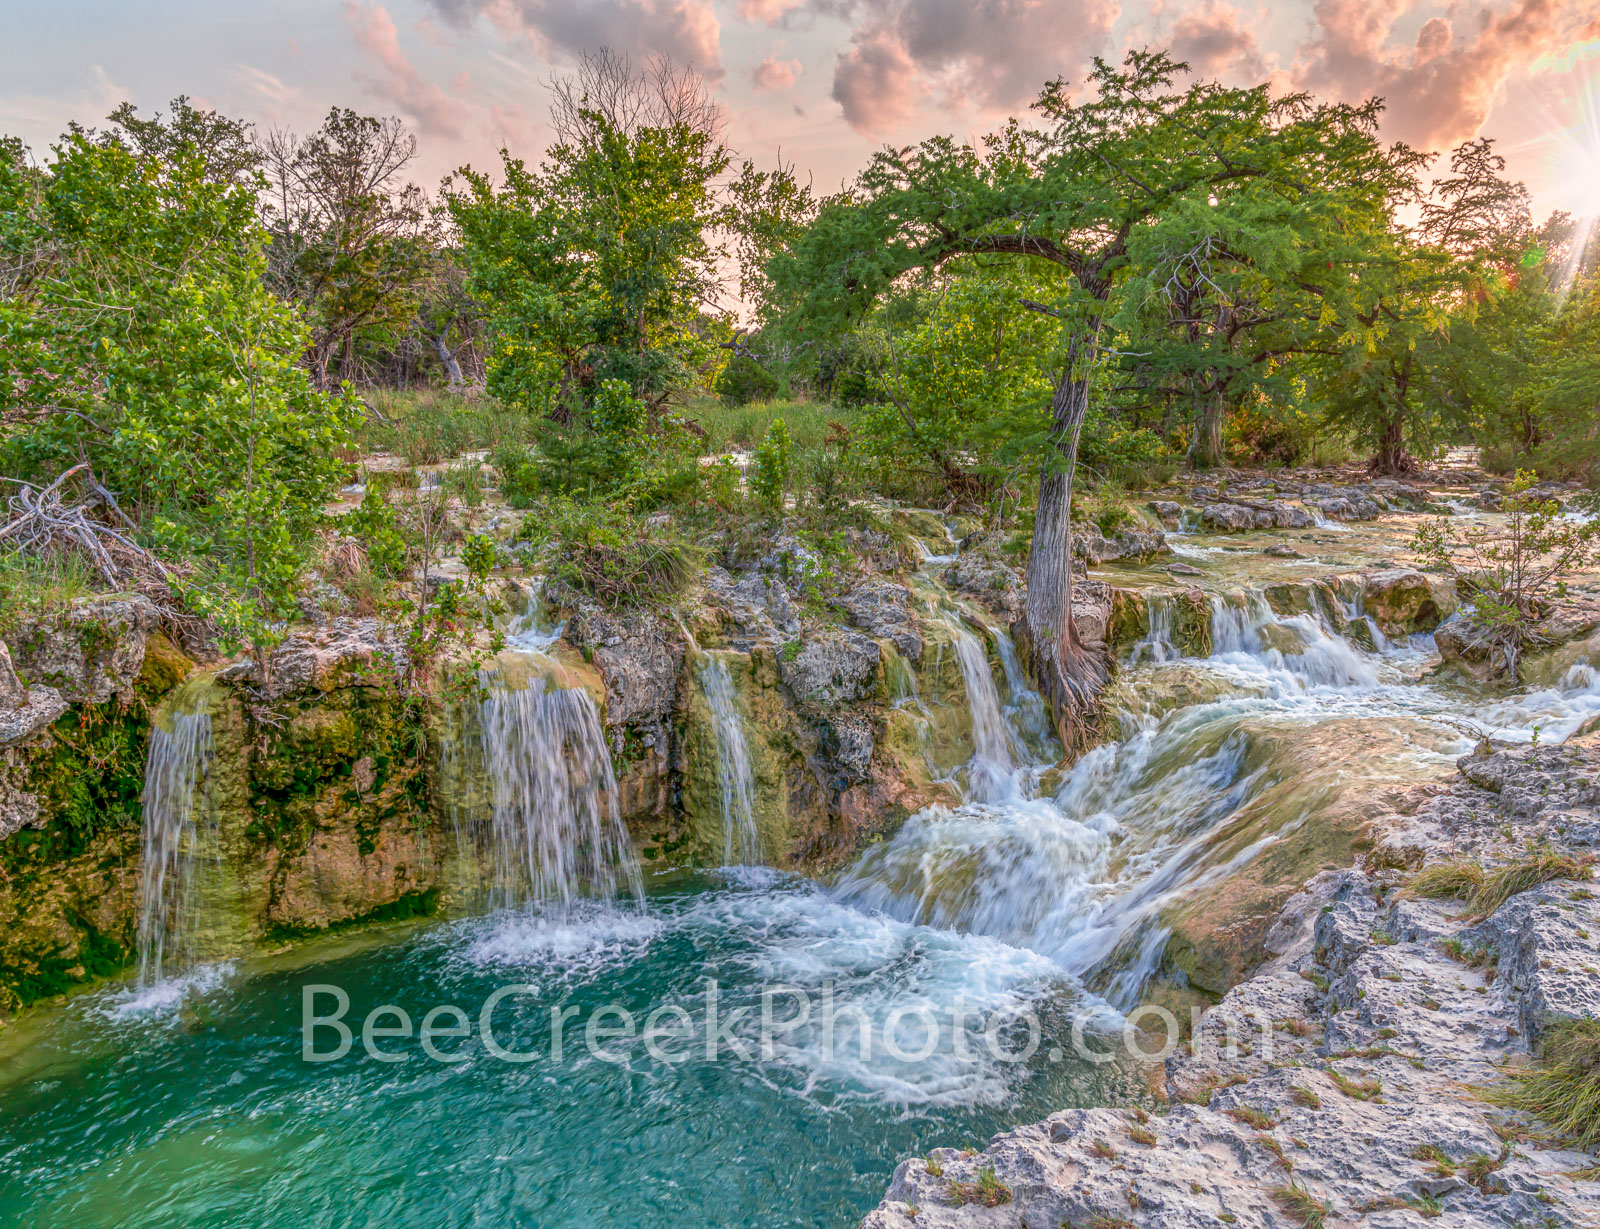 Texas Hill Country Waterfall Sunset - We came to this beautiful scene as the springs had created these nice waterfalls over the...